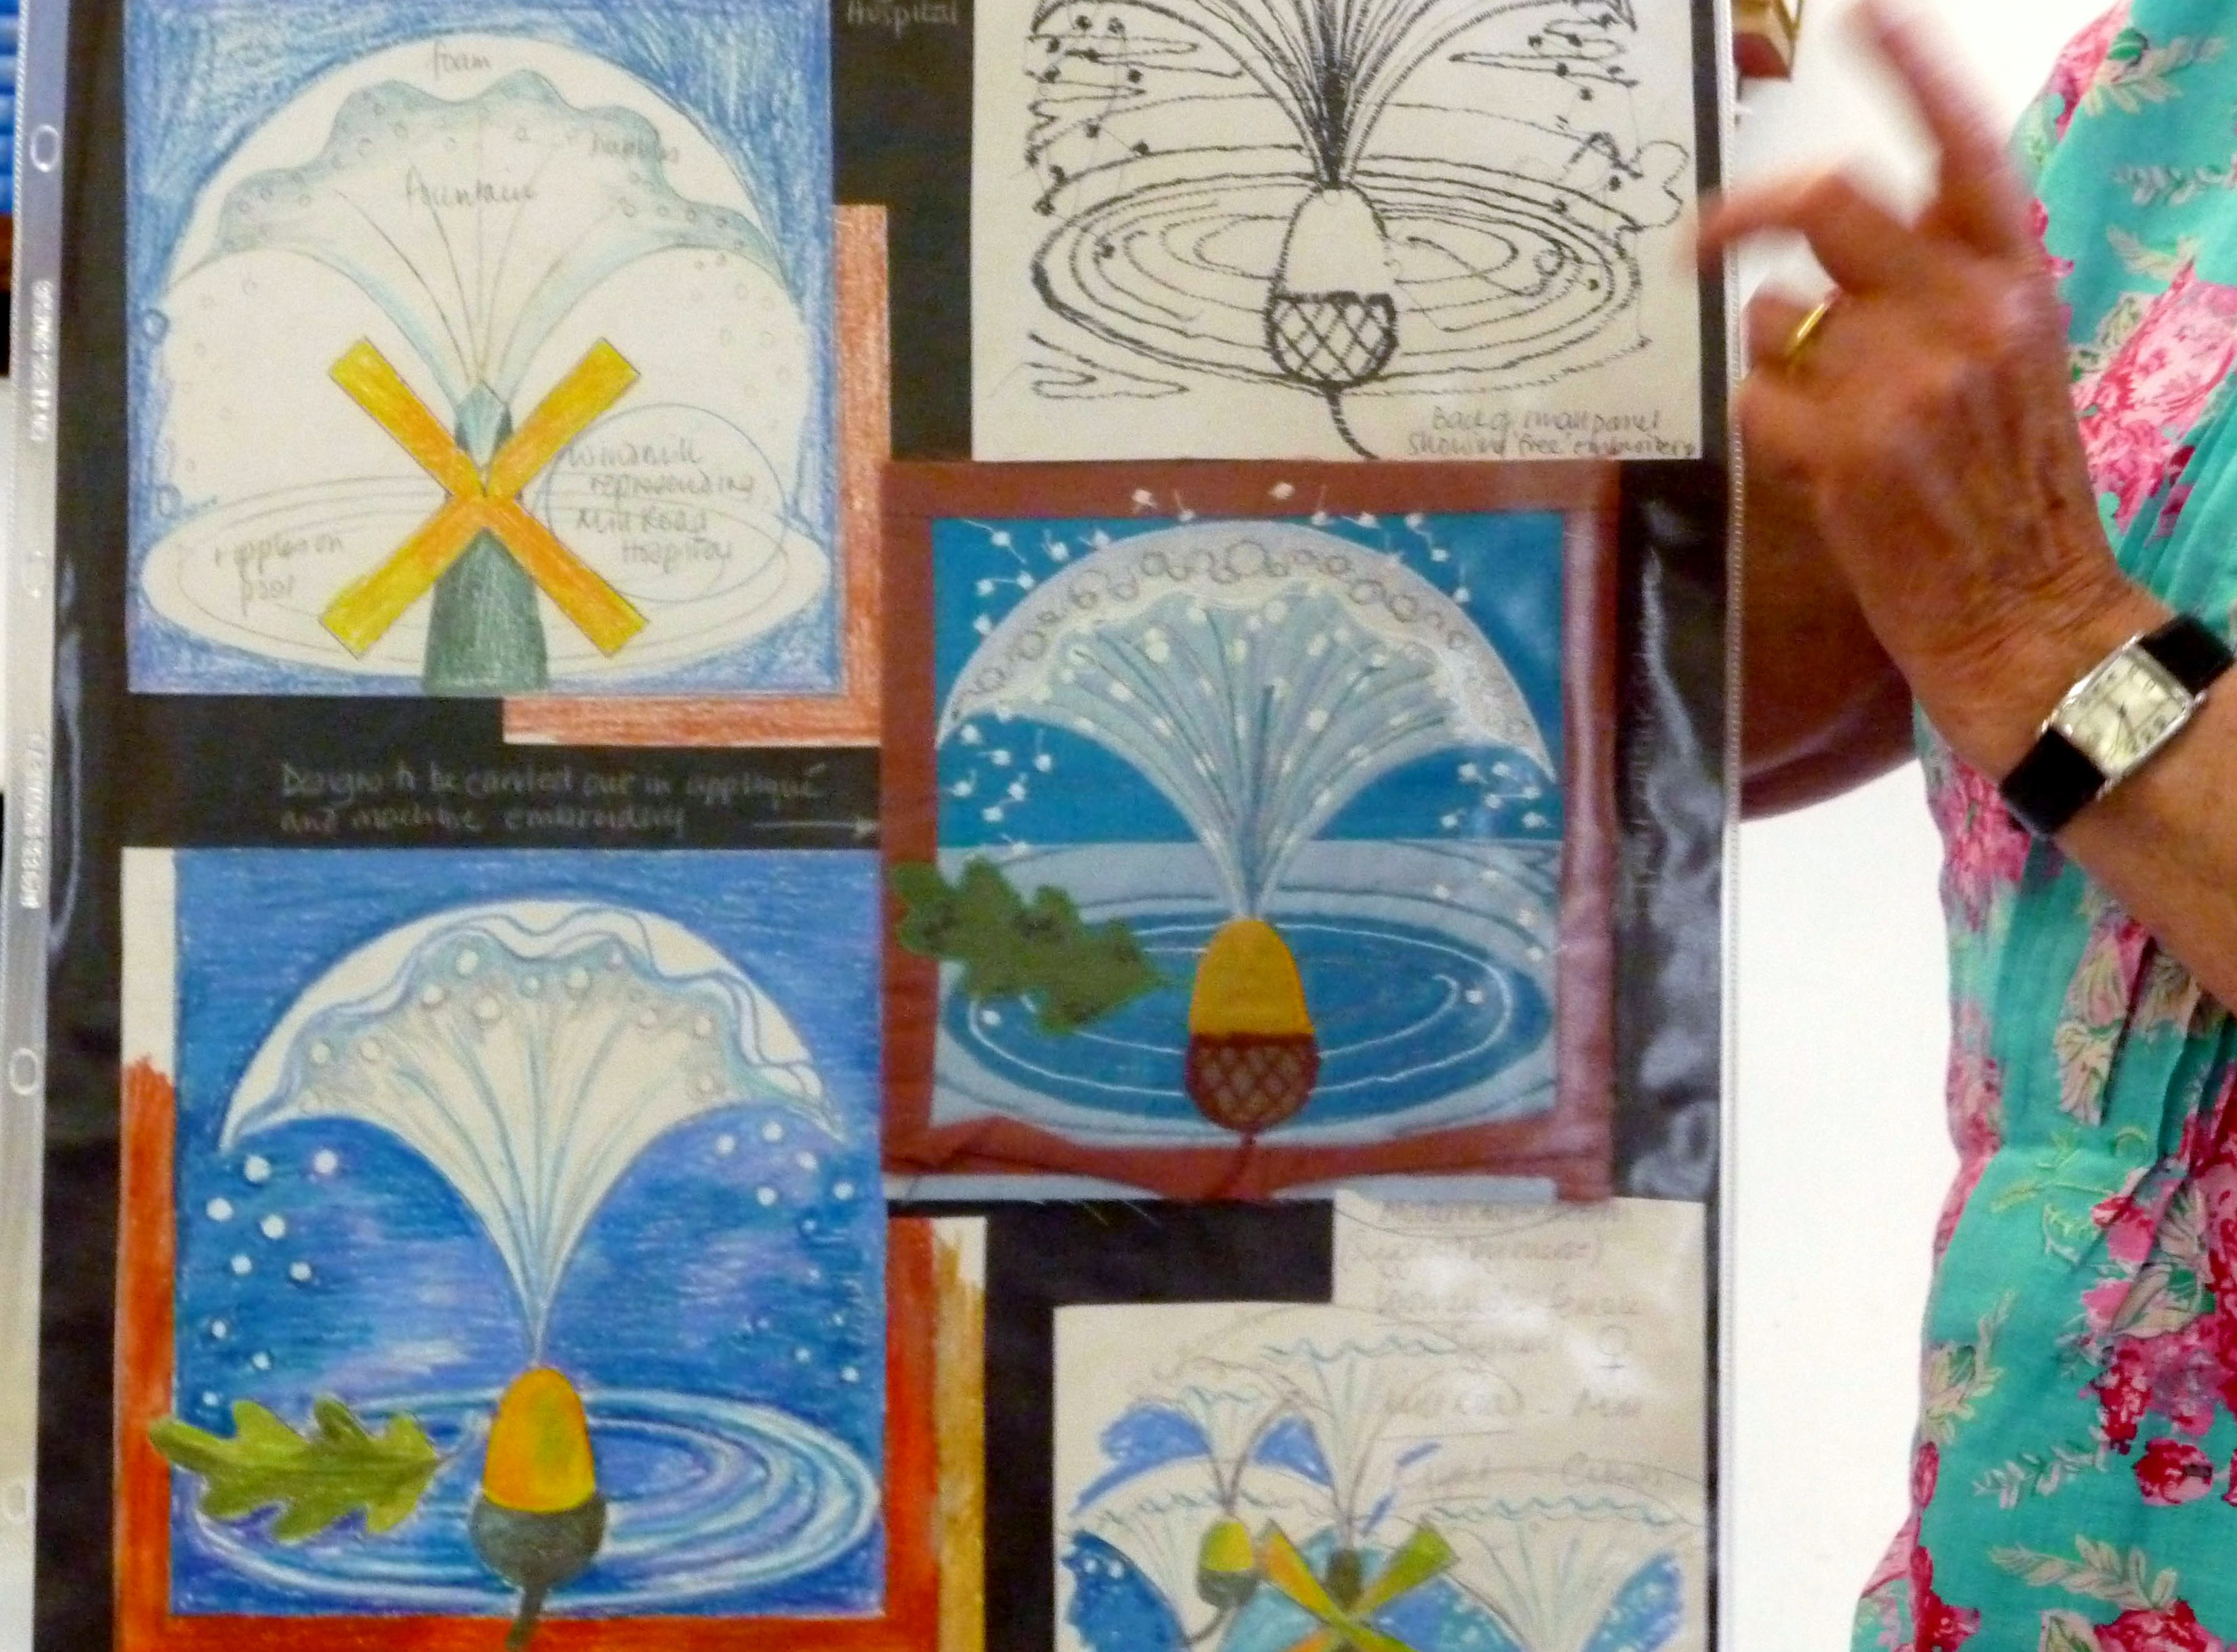 a design sheet Norma Heron used in planning THE POOL OF LIFE embroidered hanging, 1995